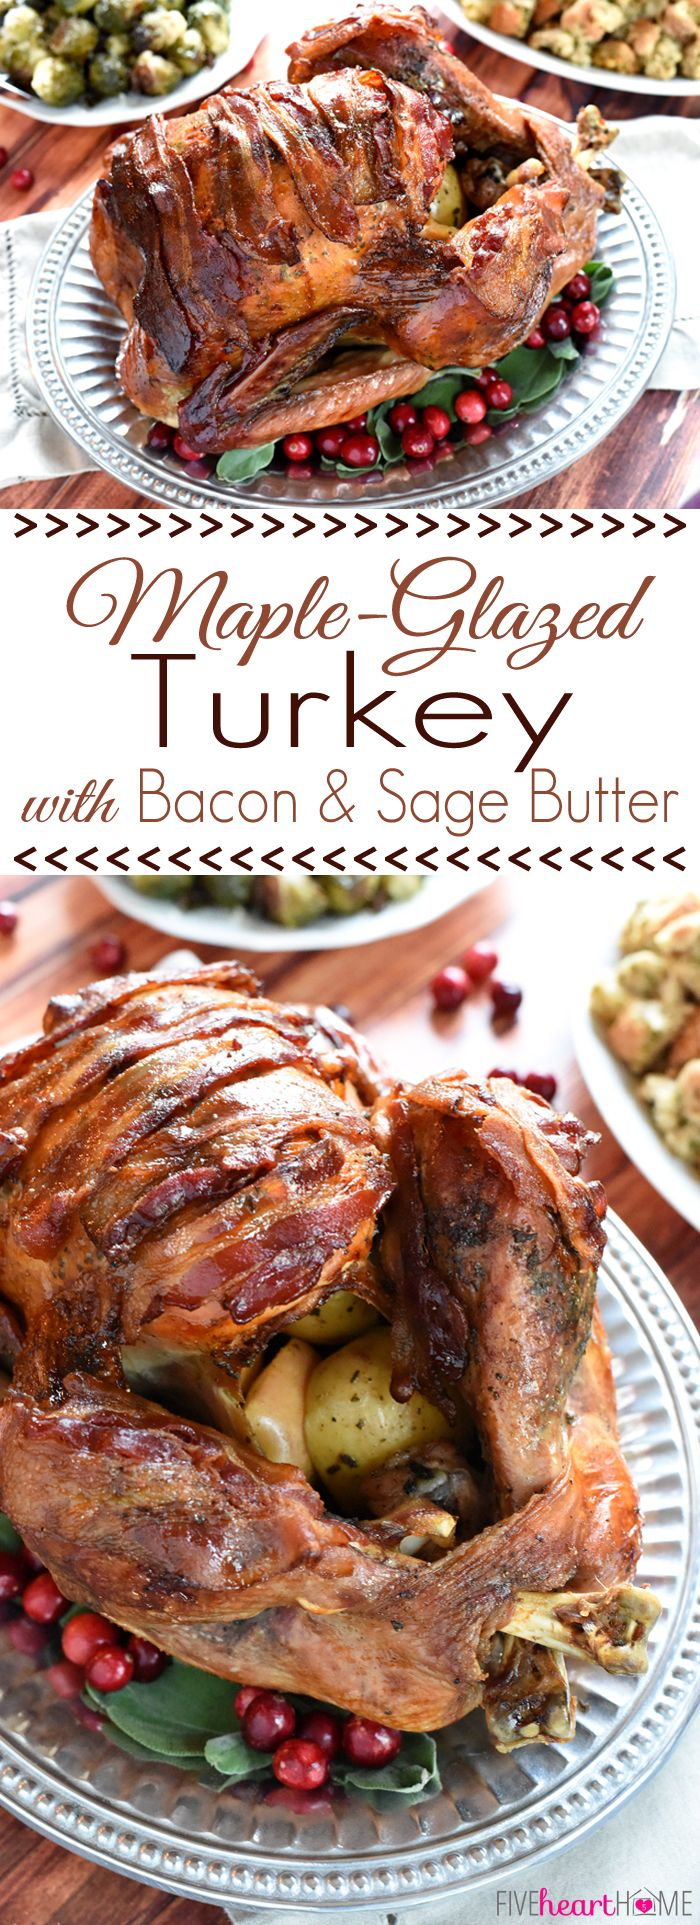 Maple-Glazed Turkey with Bacon and Sage Butter + Thanksgiving Recipe Blog Hop! FoodBlogs.com